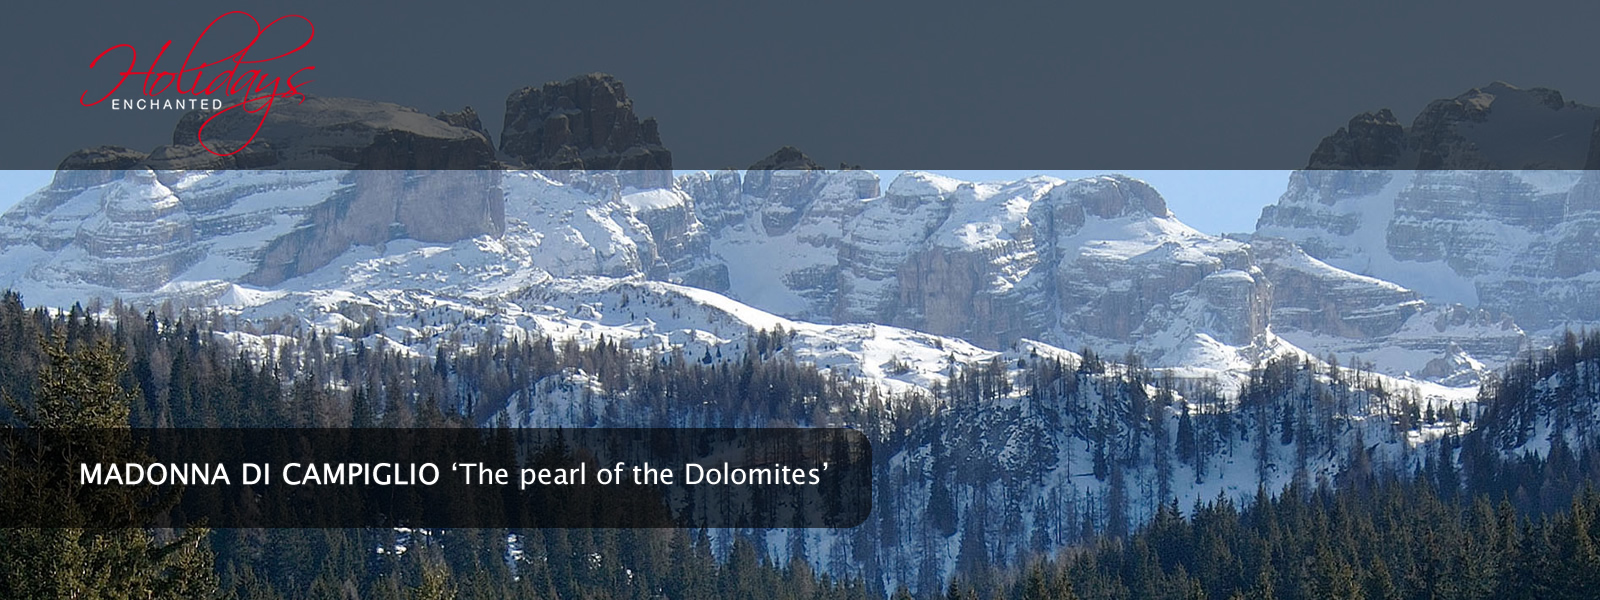 The snowcapped Dolomites through the trees at Madonna di Campiglio